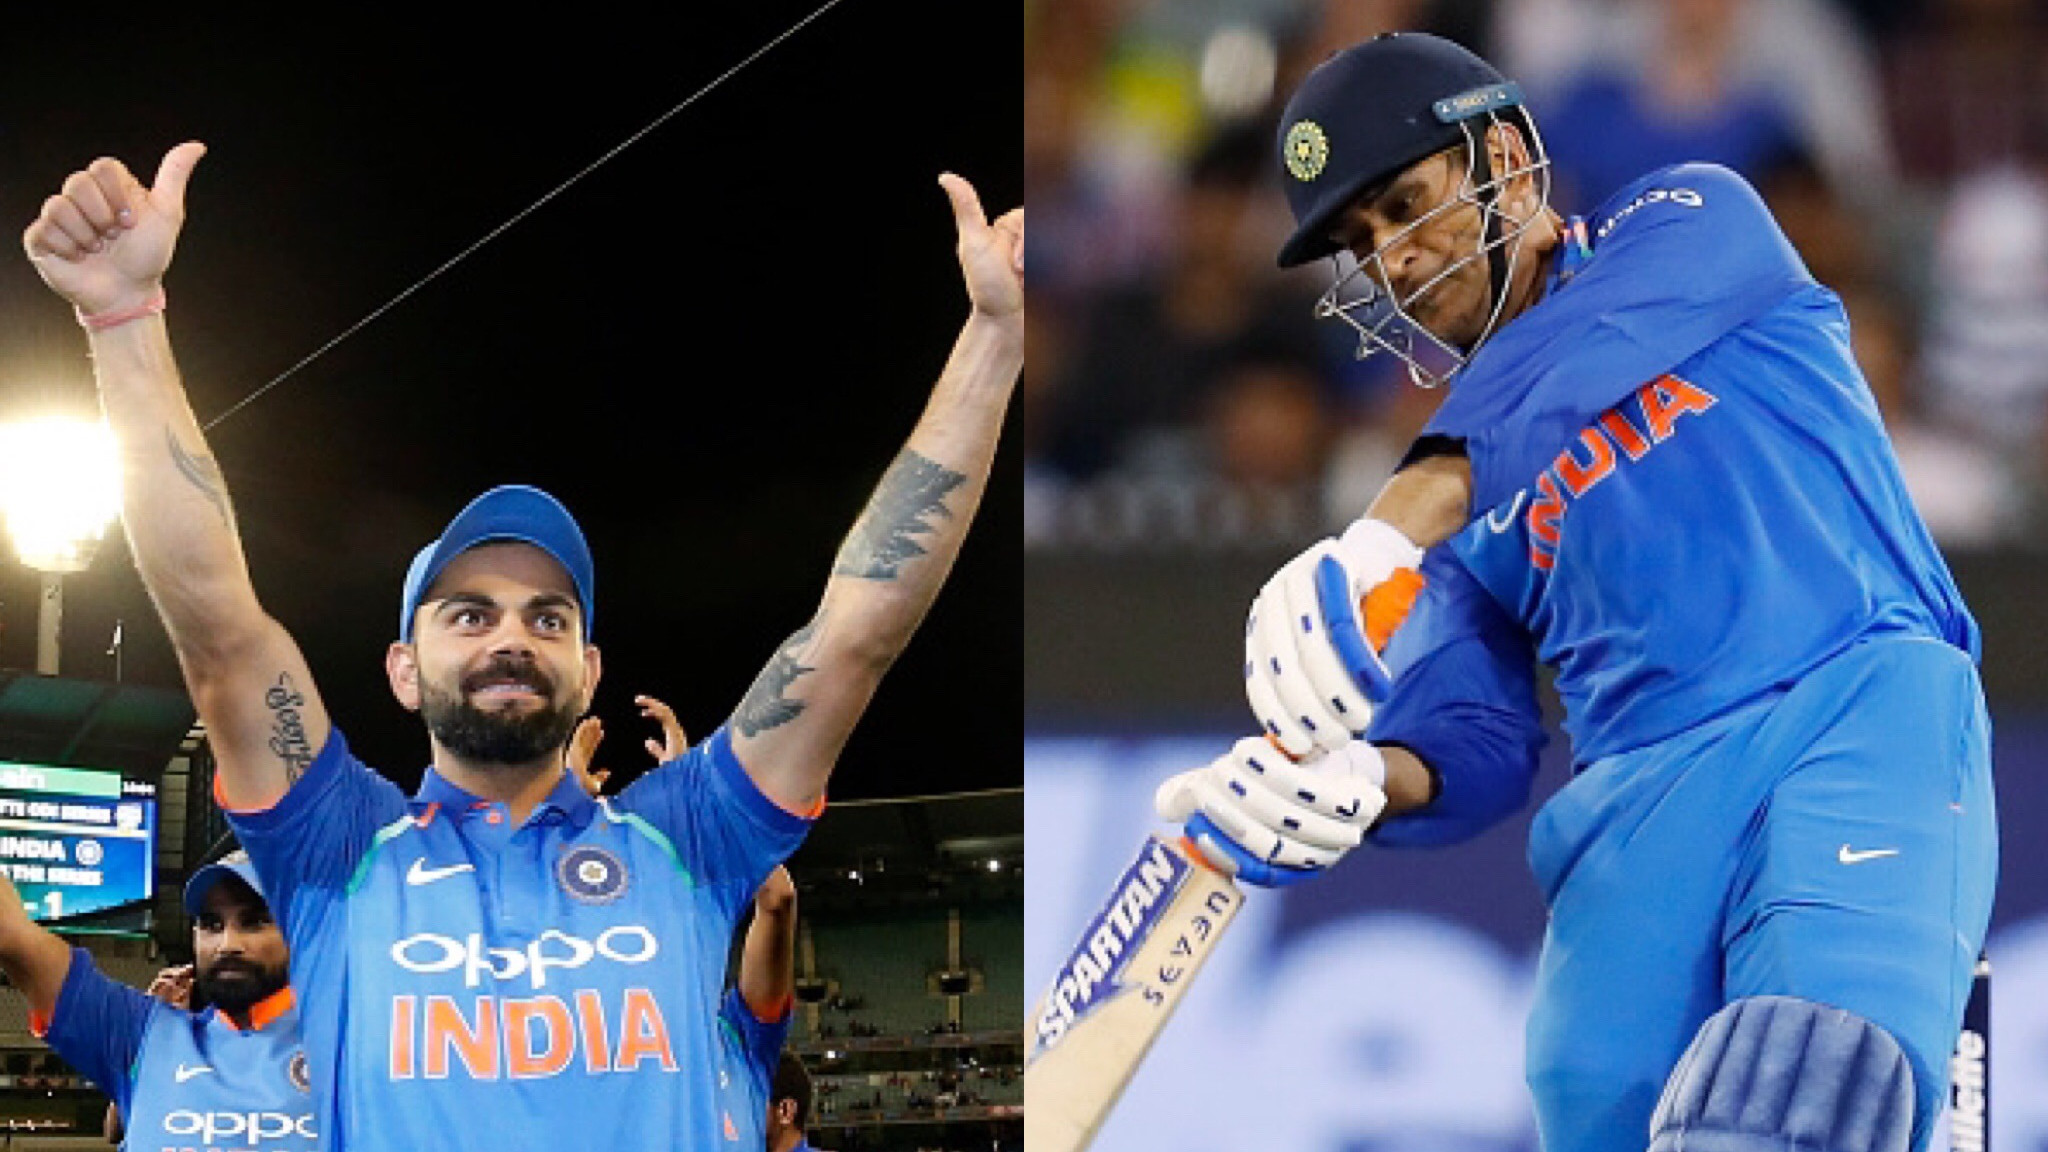 AUS v IND 2018-19: WATCH - No one is more committed to Indian cricket than MS Dhoni, says Virat Kohli